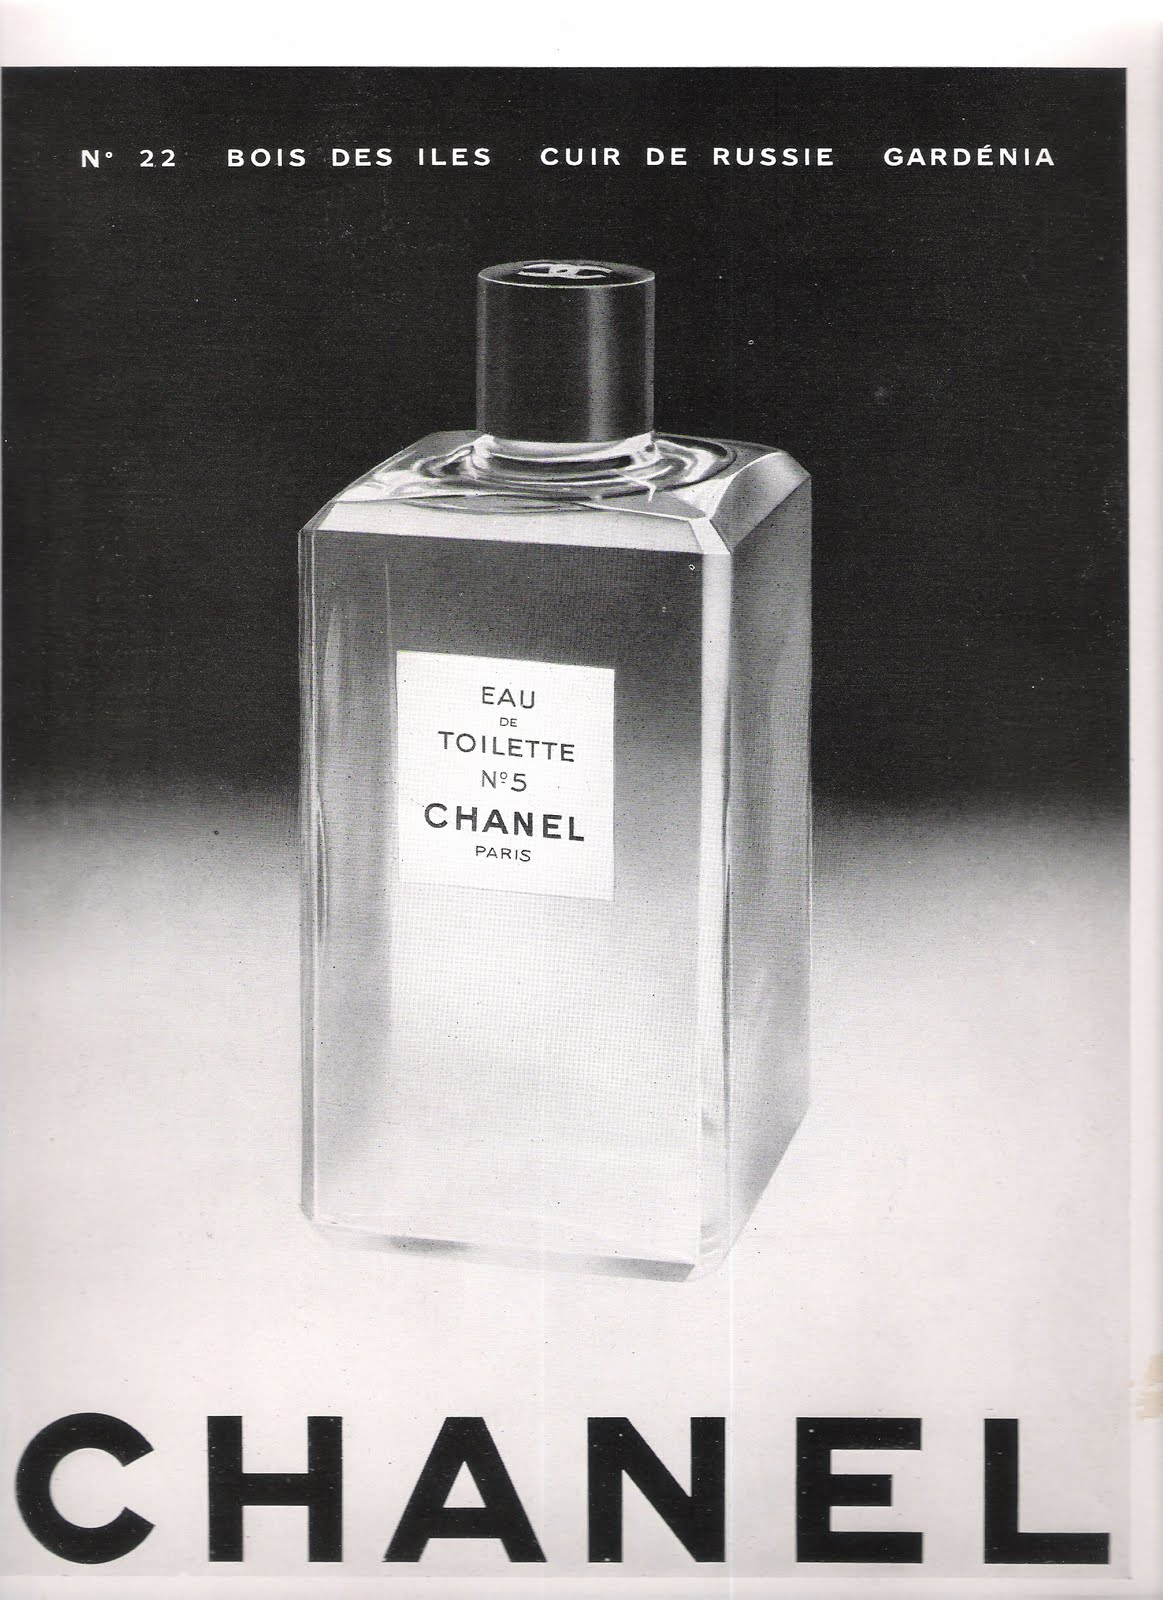 Atomic Cafe Vintage French Chanel Ads